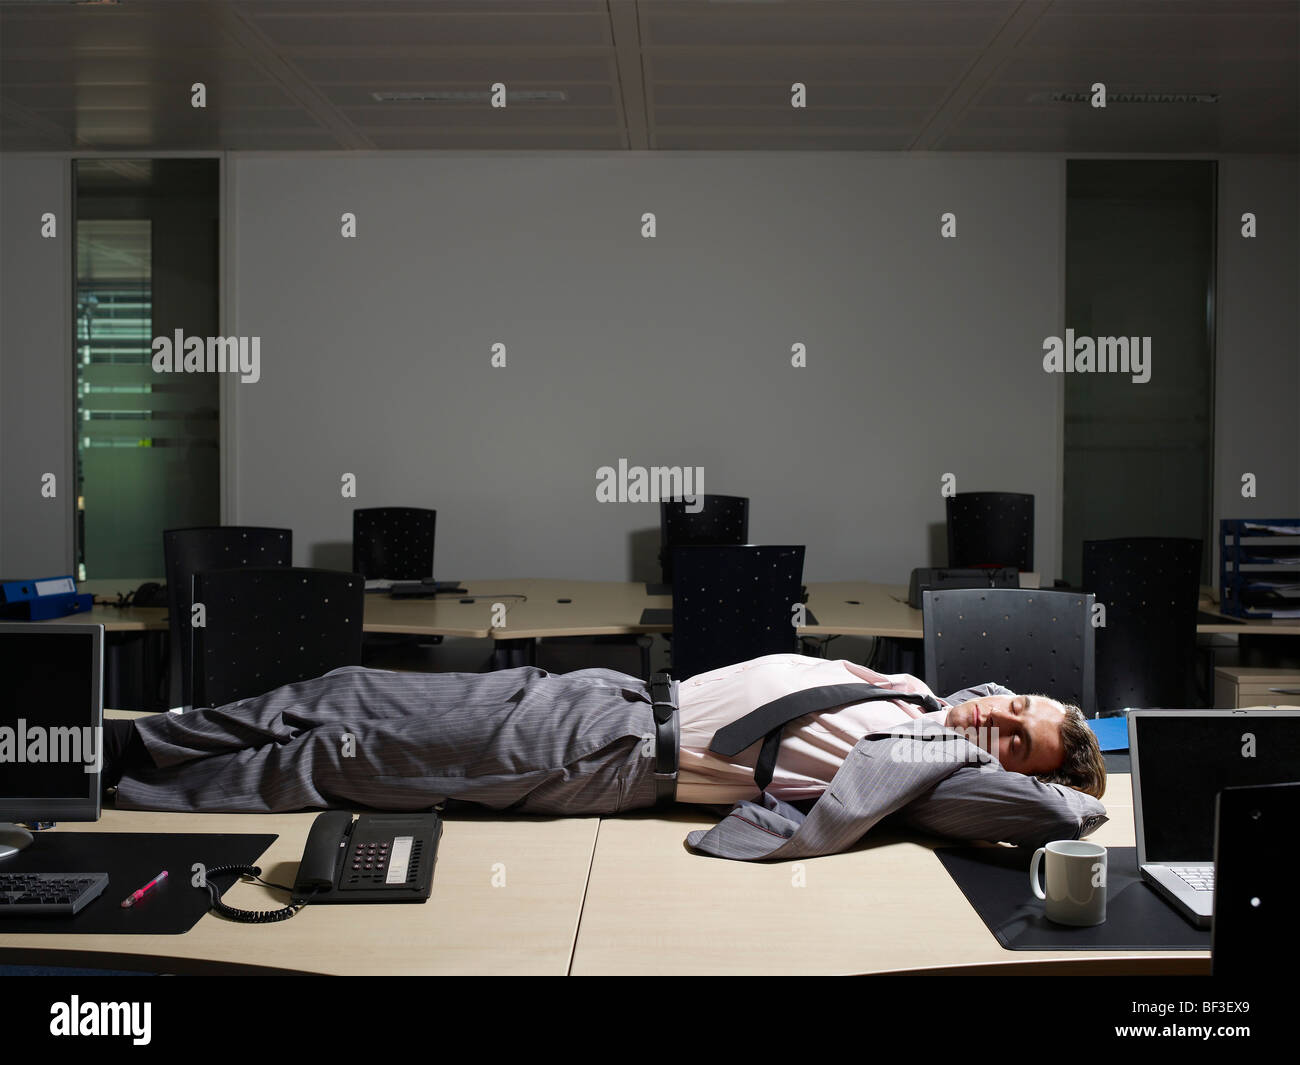 A man sleeps at his desk - Stock Image